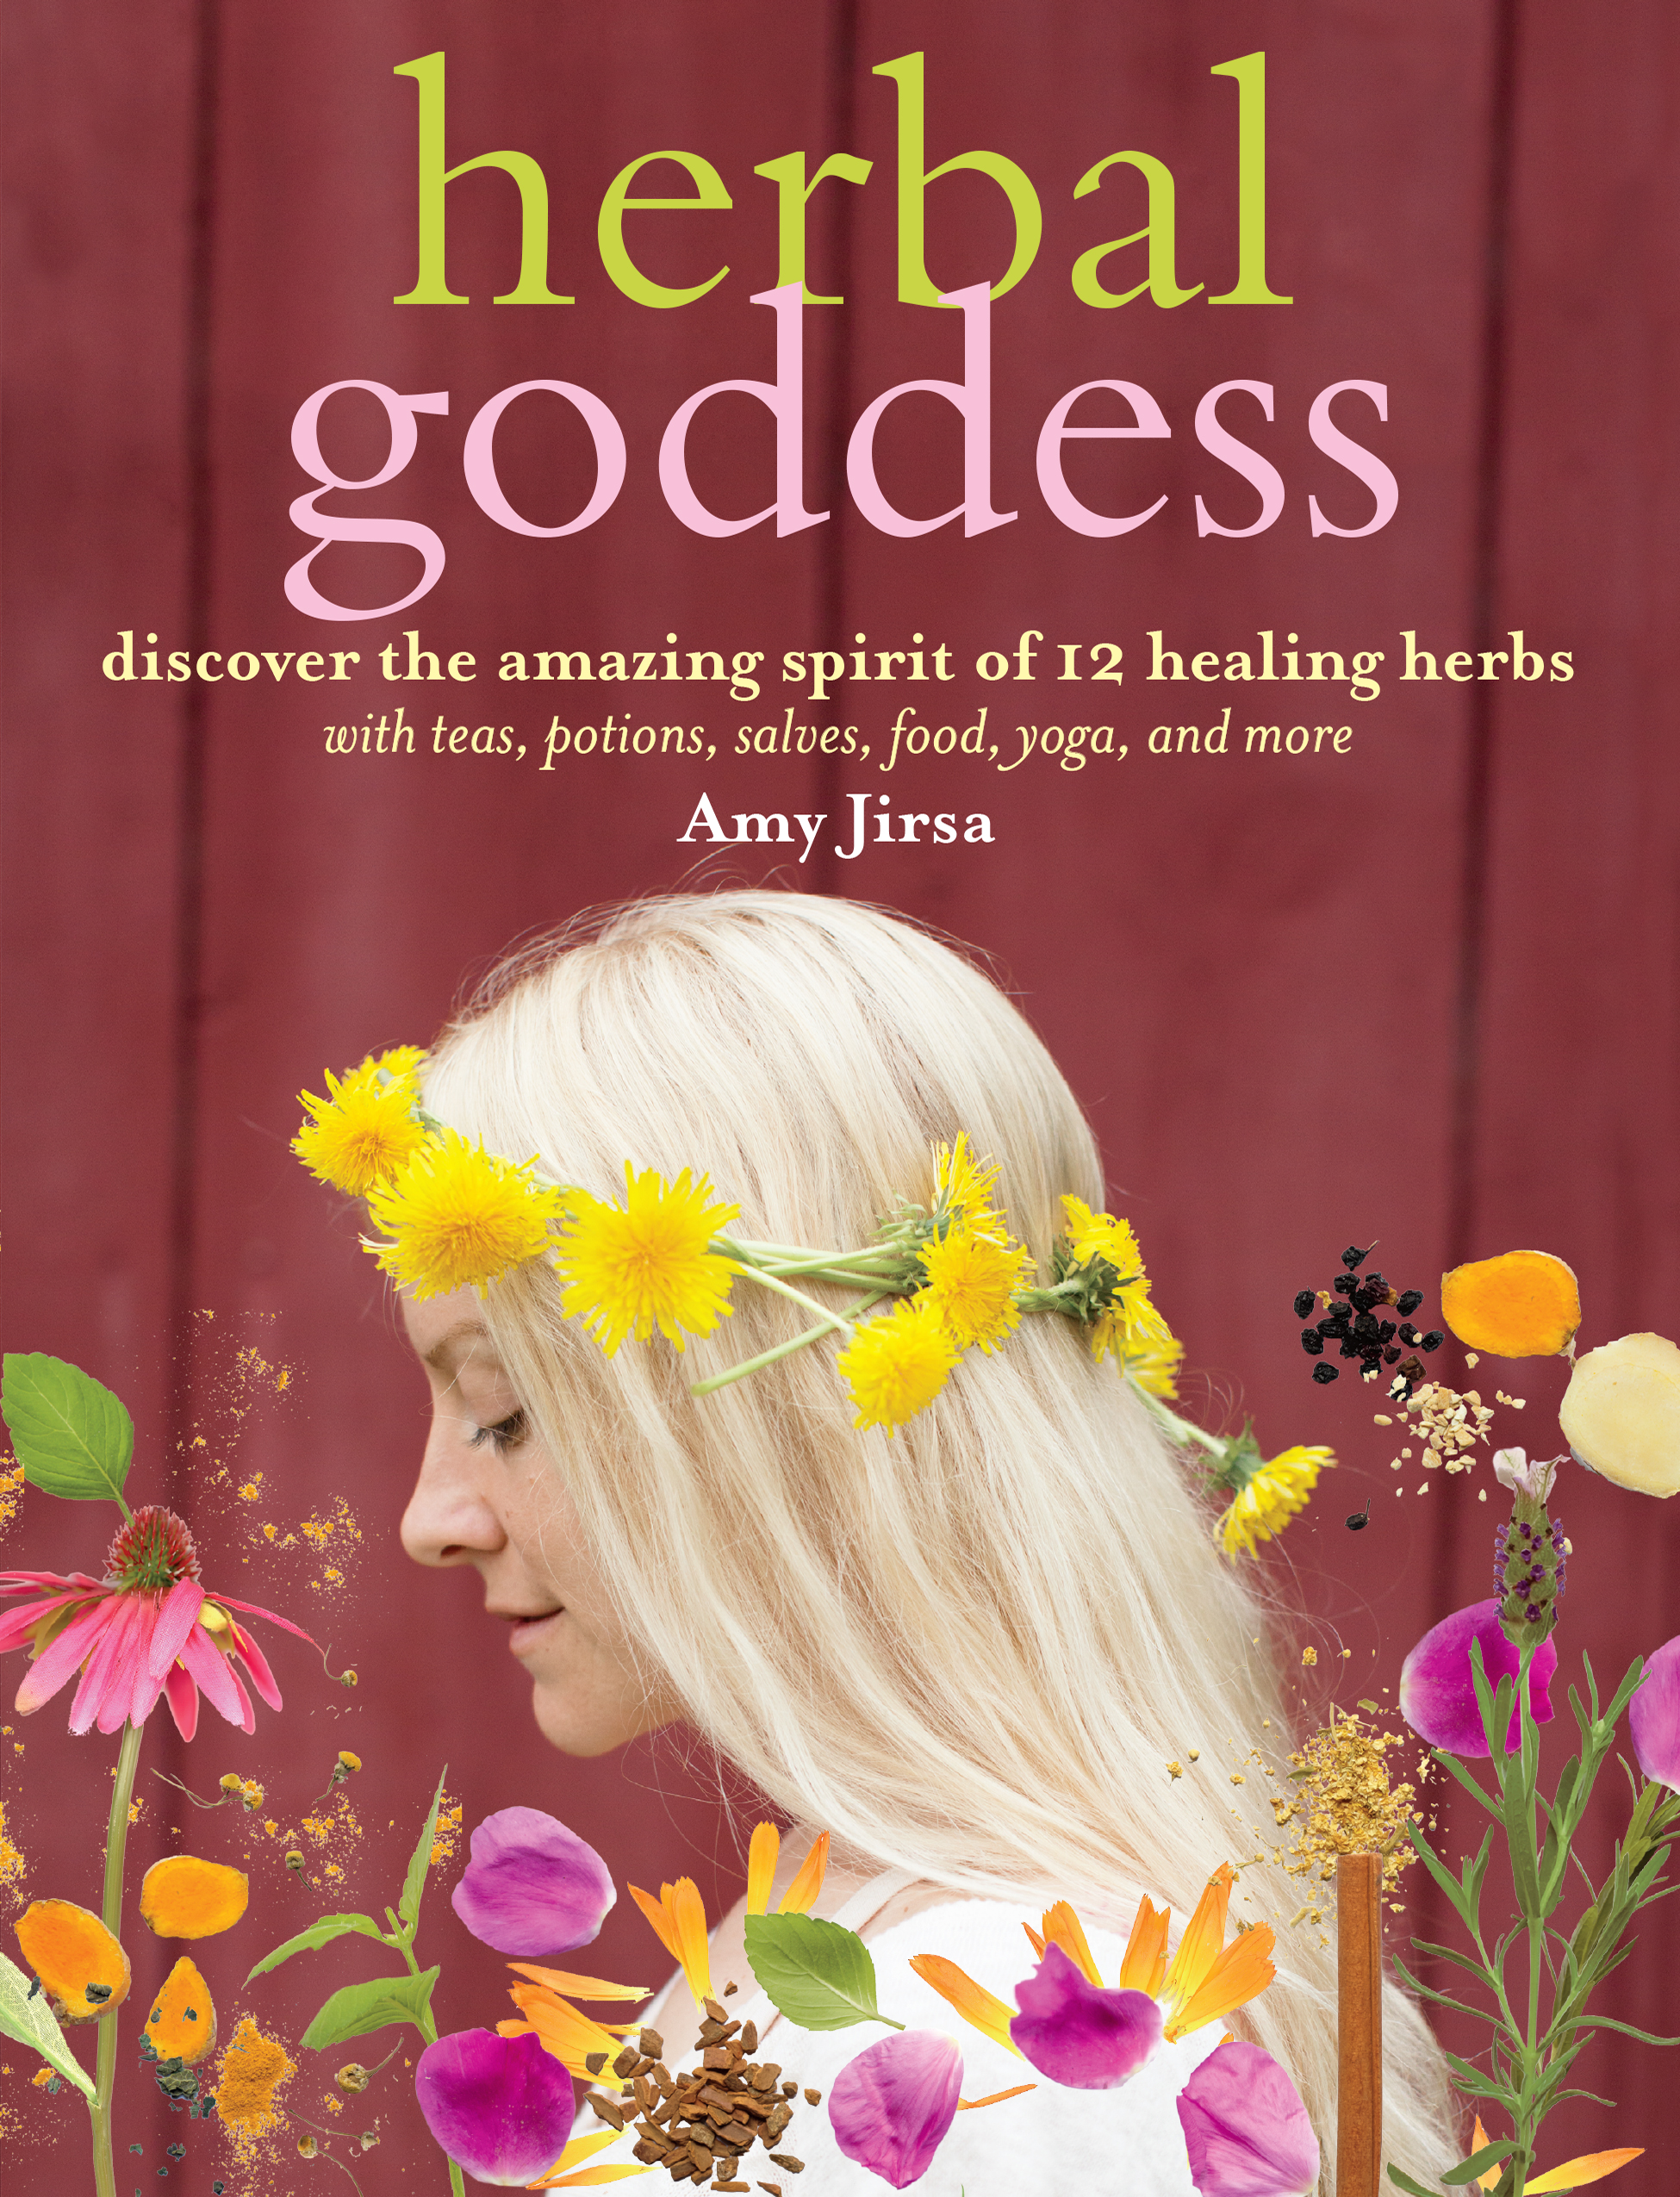 Herbal Goddess Discover the Amazing Spirit of 12 Healing Herbs with Teas, Potions, Salves, Food, Yoga, and More - Amy Jirsa